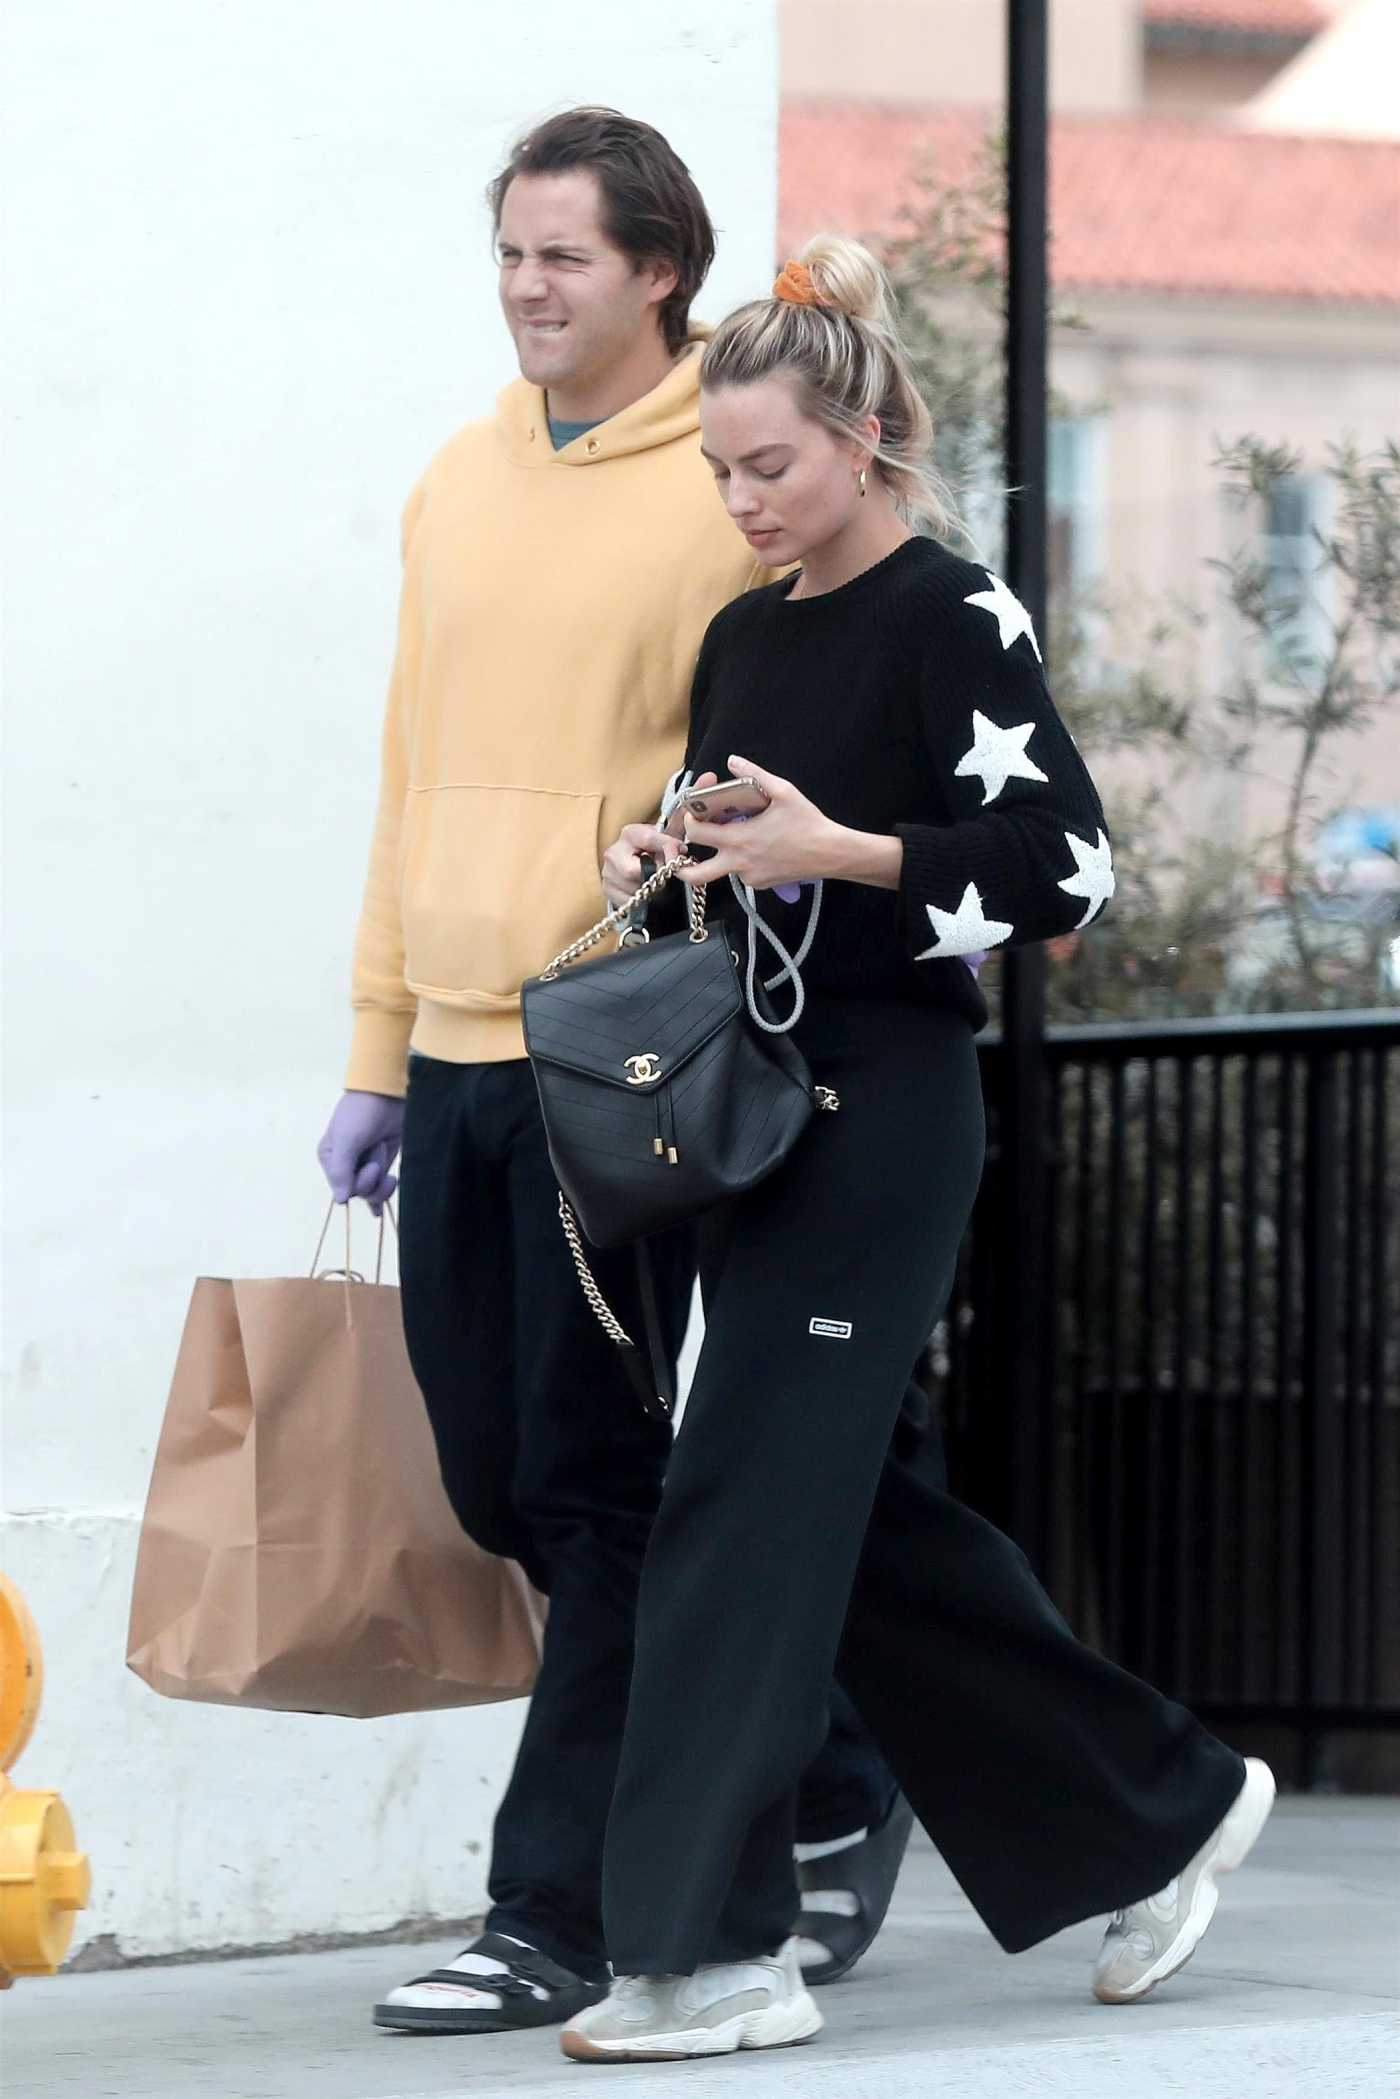 Margot Robbie in a Black Pants Was Seen Out with Tom Ackerley in Los Angeles 03/31/2020